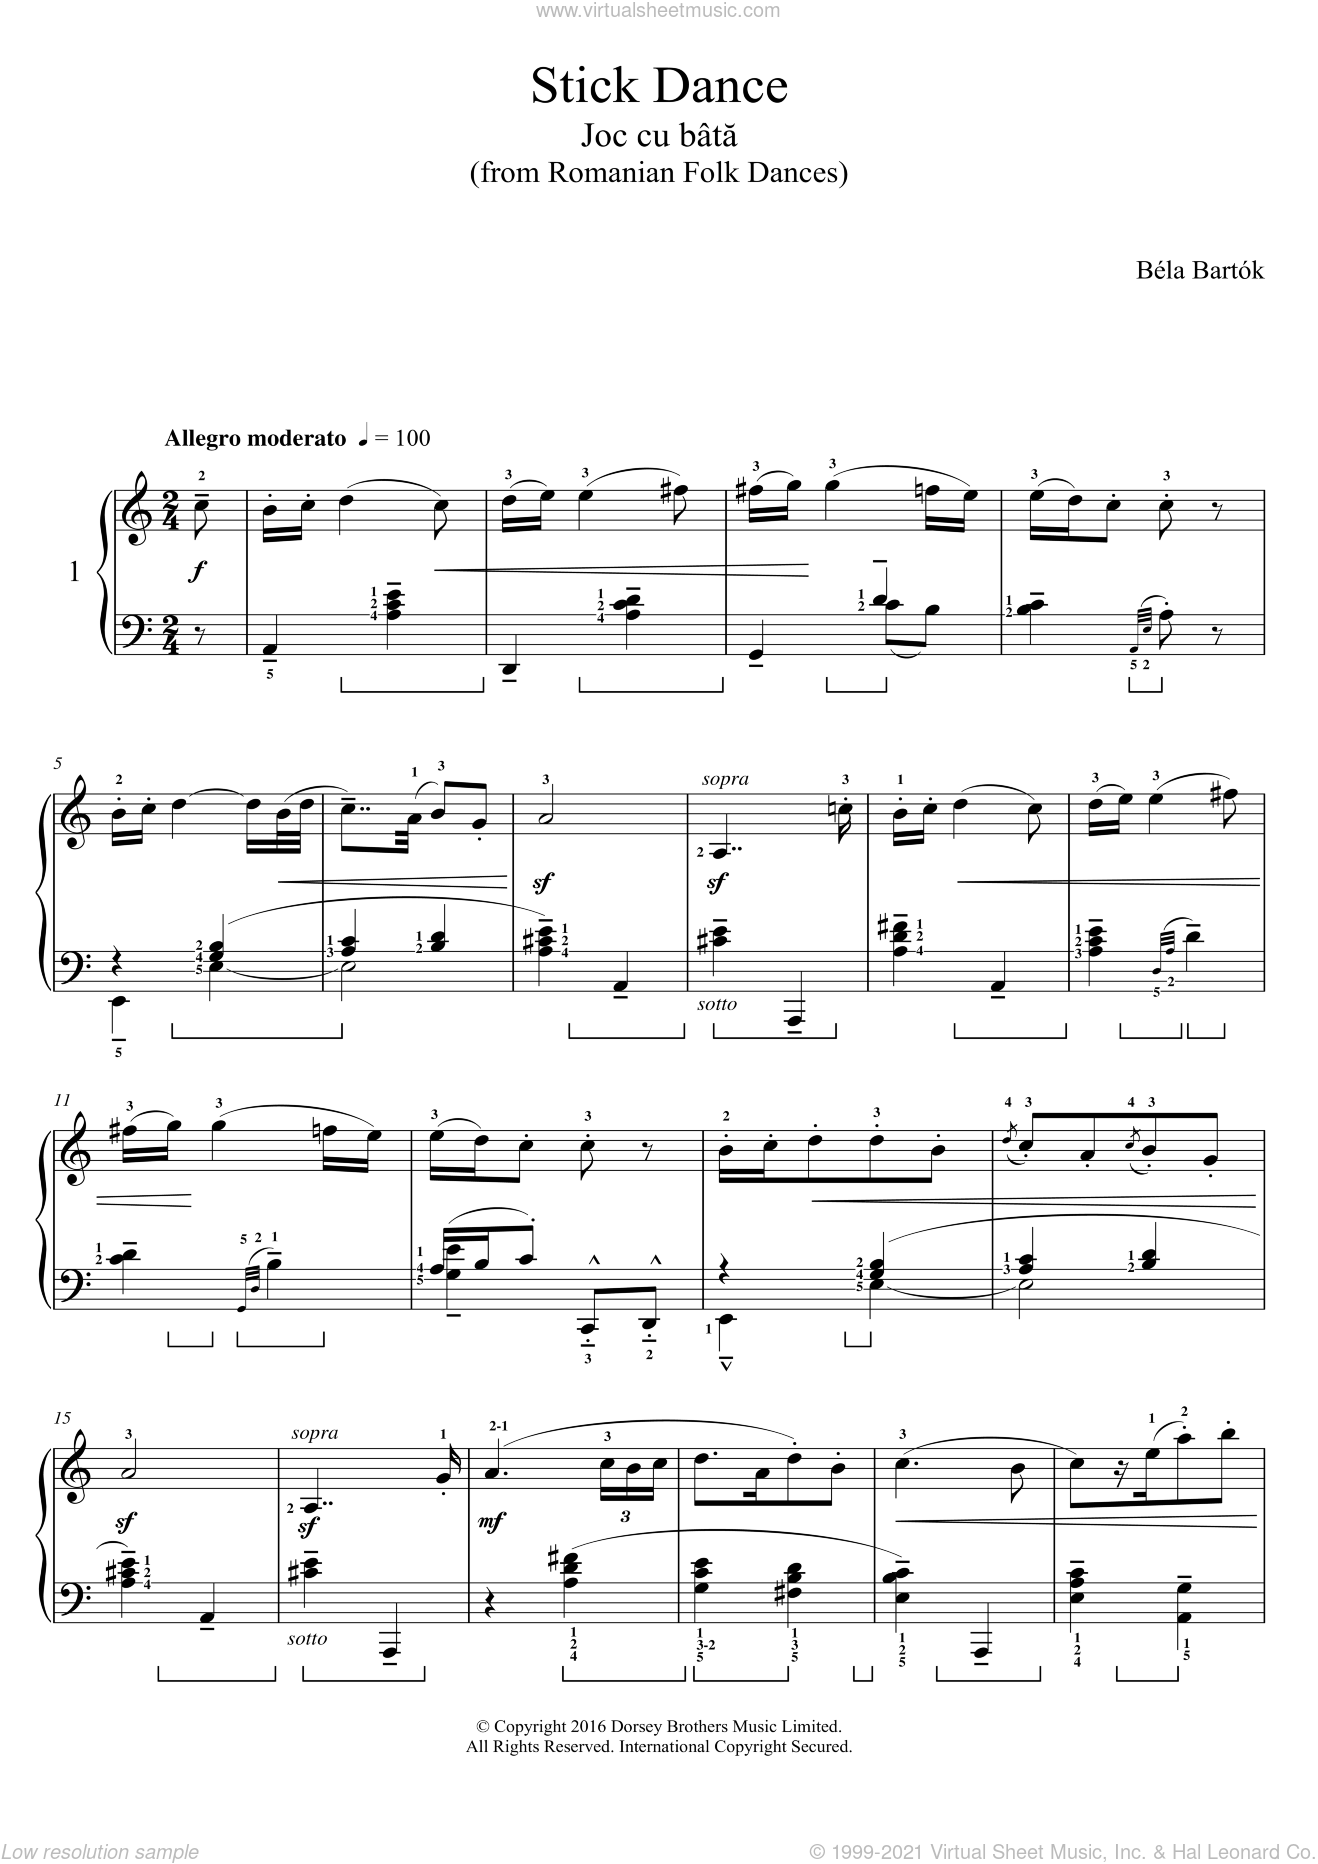 Stick Dance (from Romanian Folk Dances) sheet music for piano solo by Bela Bartok, classical score, intermediate skill level